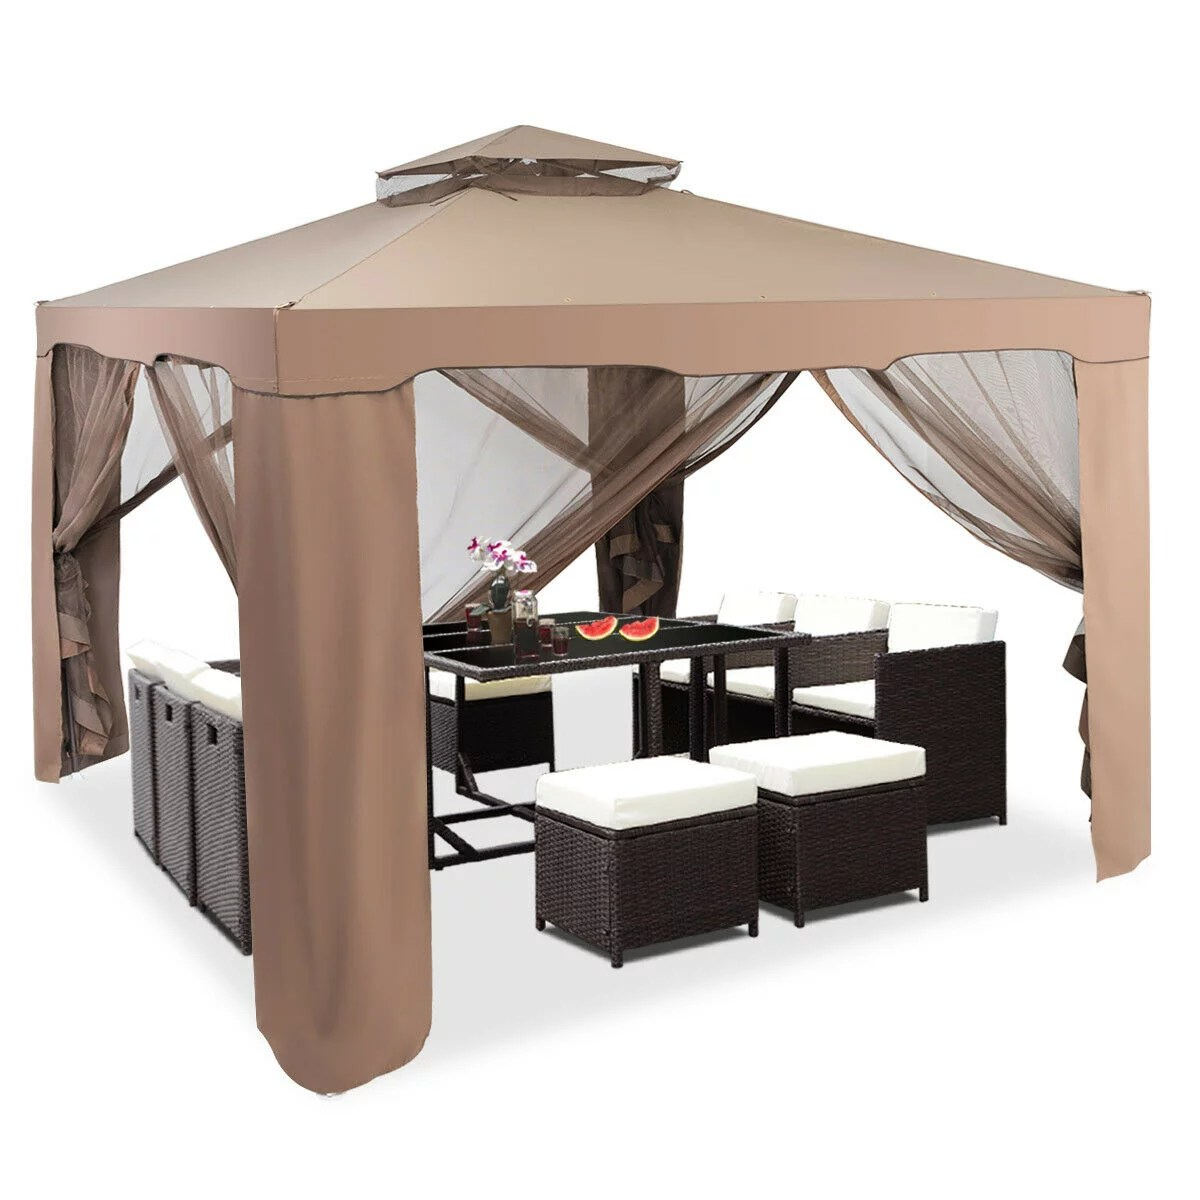 gymax 10 x 10 canopy gazebo tent shelter w mosquito netting outdoor patio